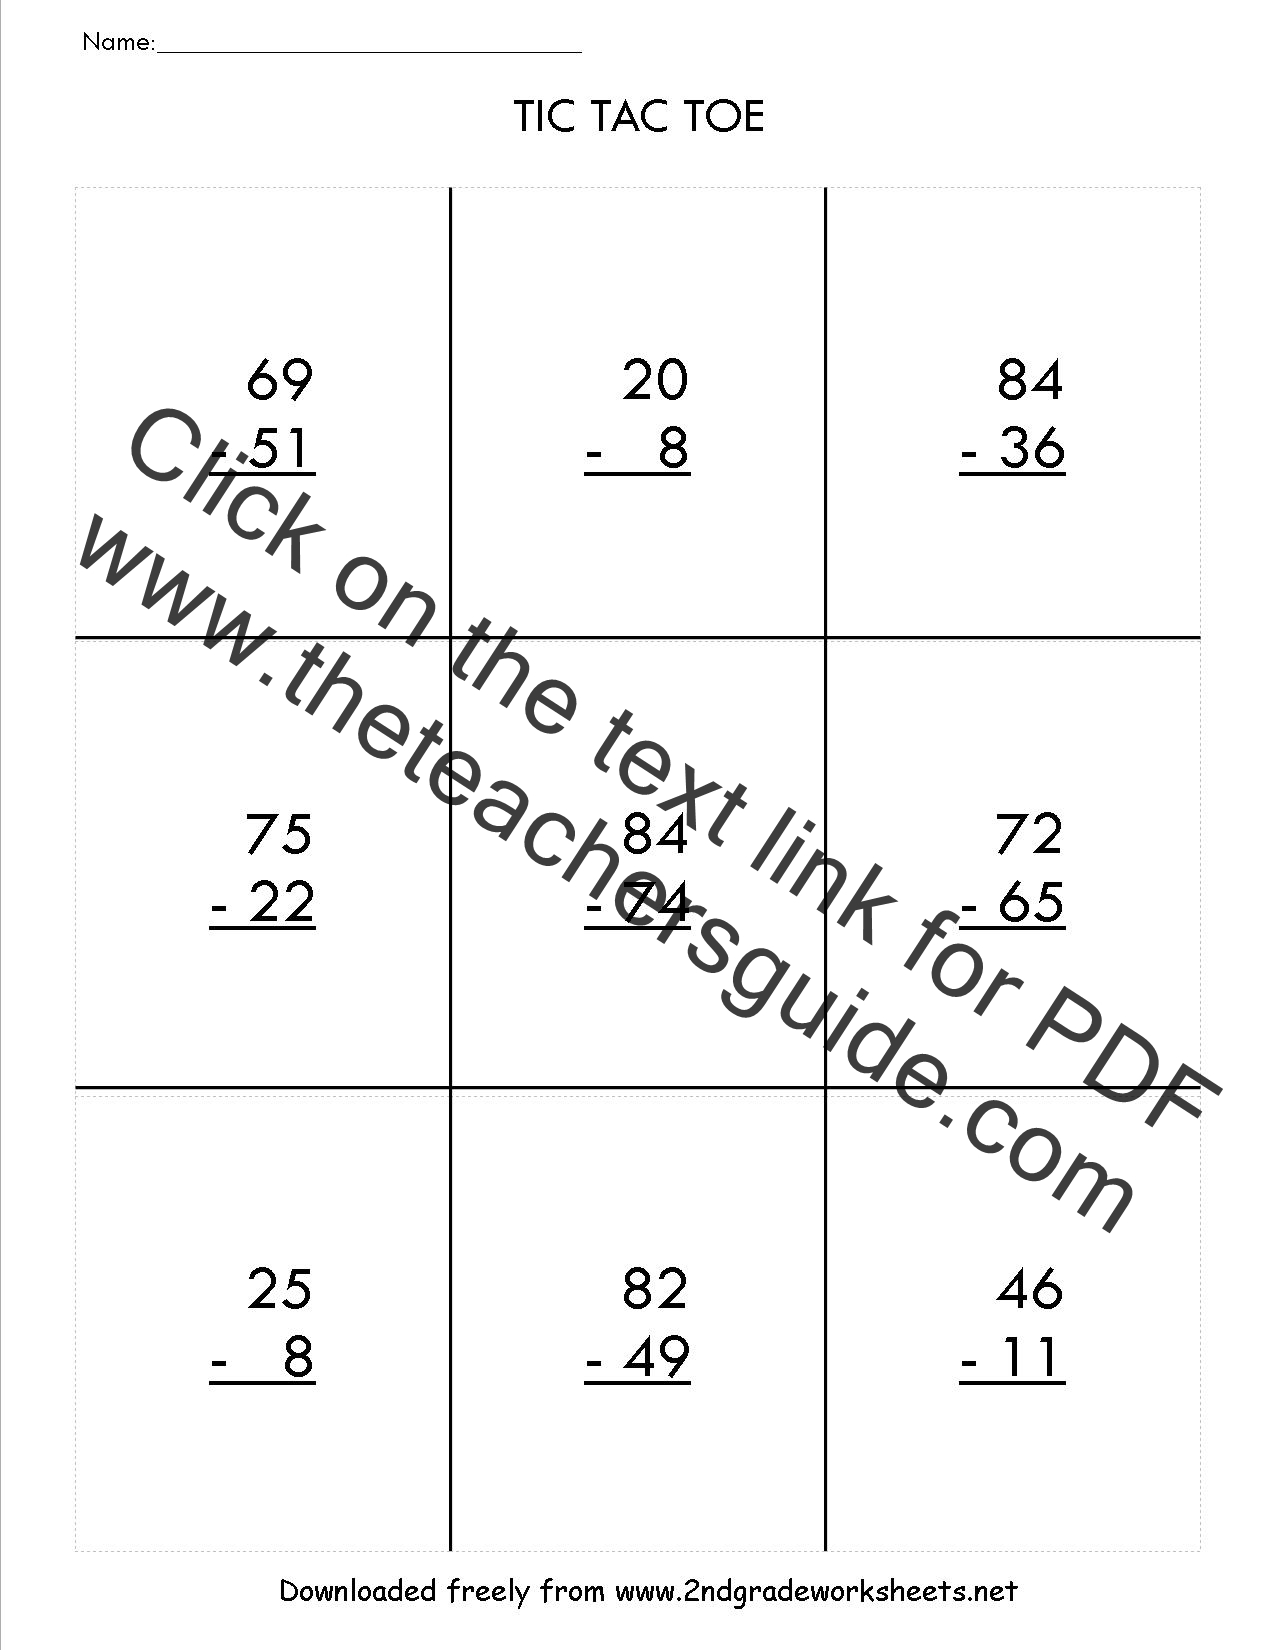 Two Digit Subtraction Worksheets – 2nd Grade Subtraction with Regrouping Worksheets